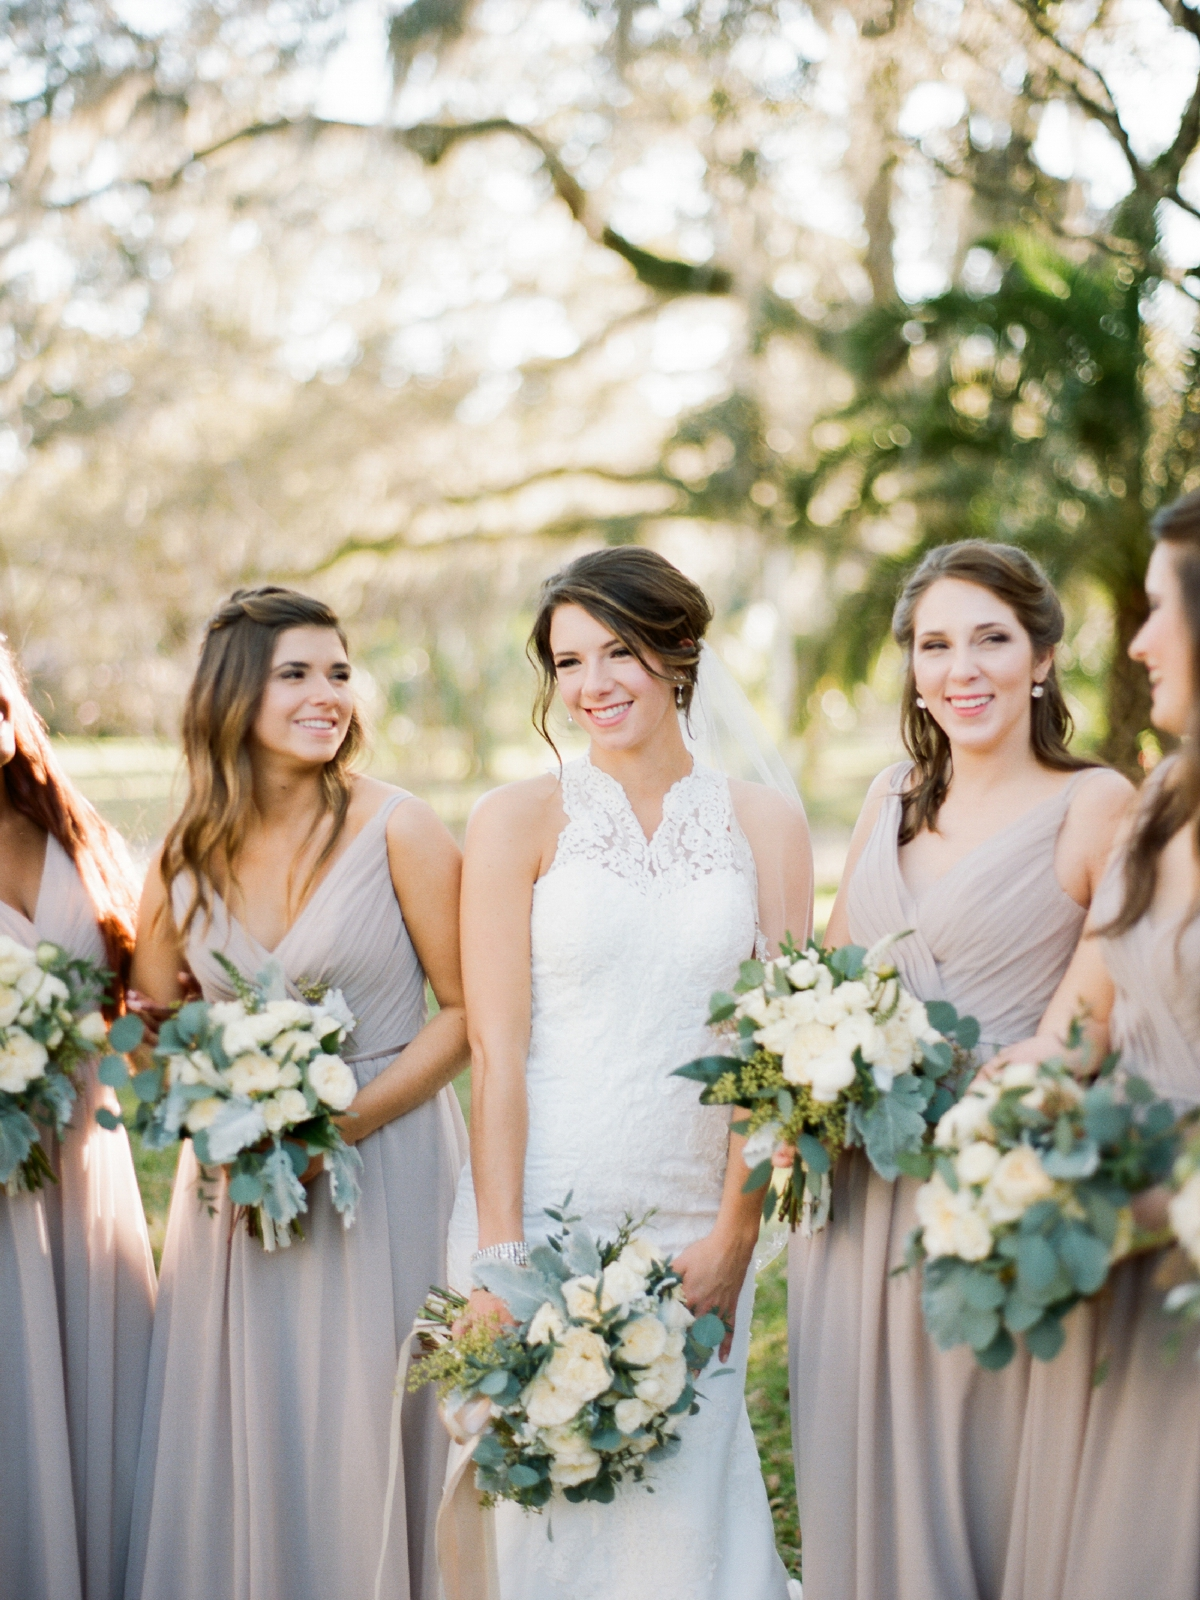 goodwood museum tallahassee wedding photographer - tallahassee florida - shannon griffin_0060.jpg